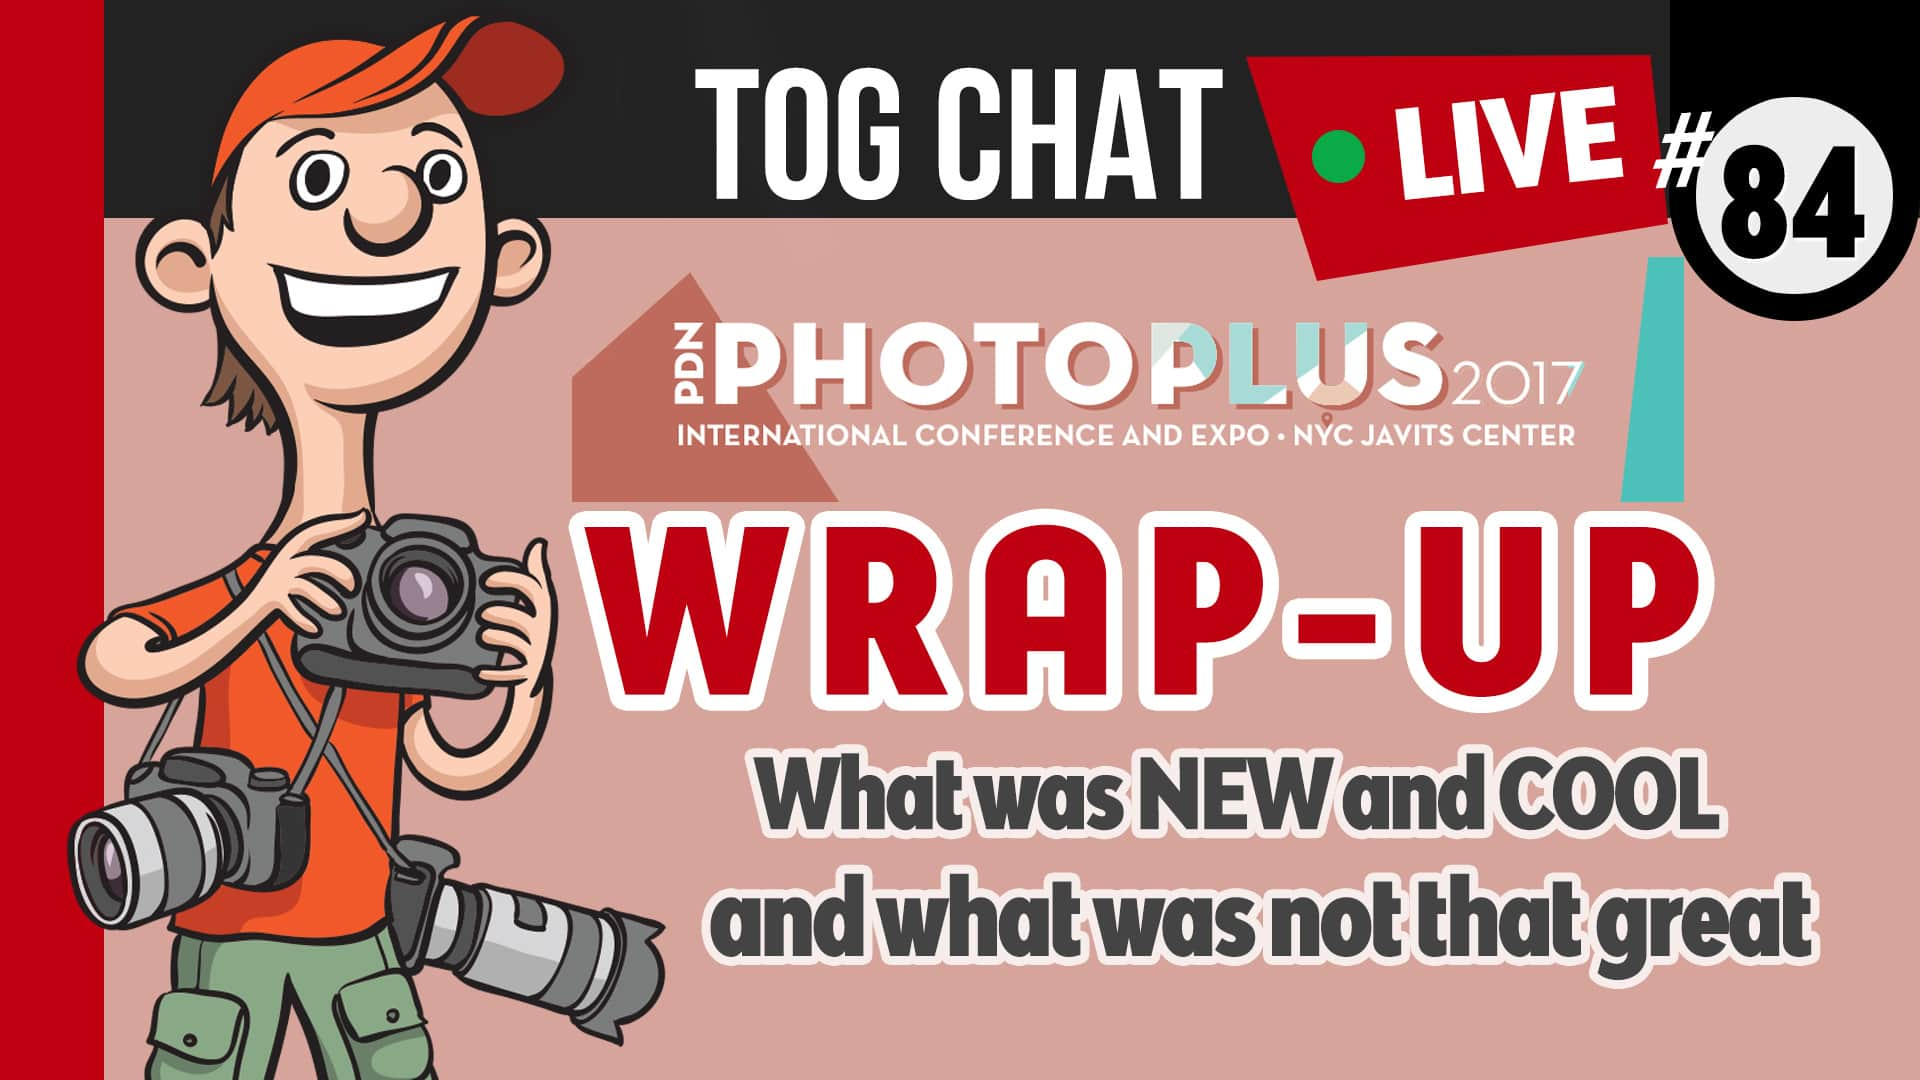 Photo of PHOTOPLUS 2017 Wrap-up. Whats NEW, Whats COOL and what was not that great?